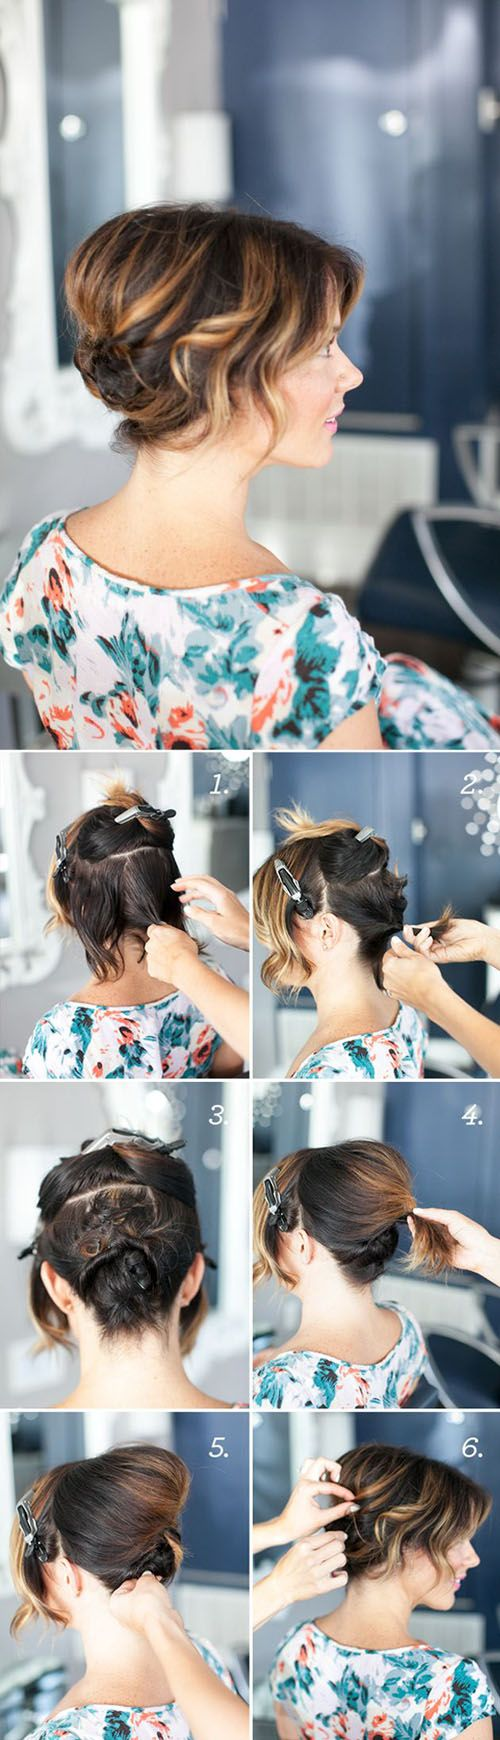 15 Gorgeous Wedding Hairstyles For Short Hair Hair Styles Short Wedding Hair Short Hair Updo